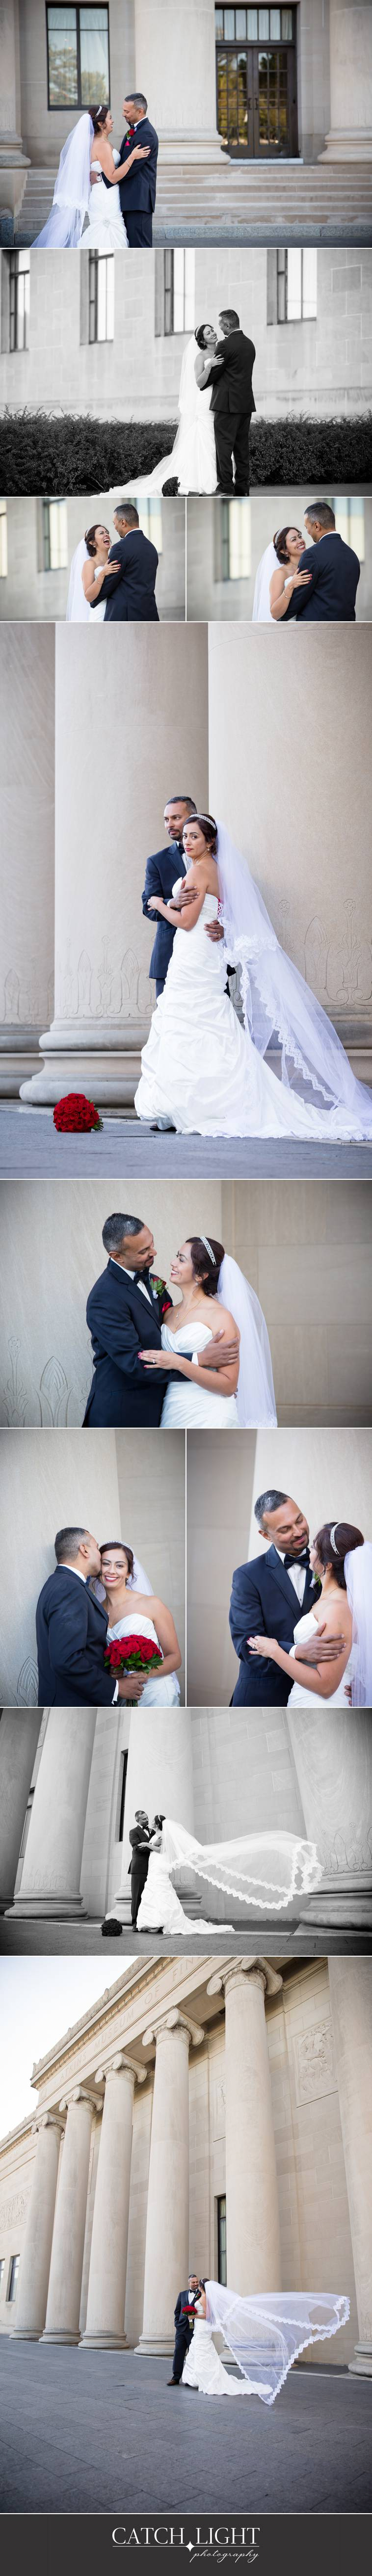 kansas city wedding photography 10